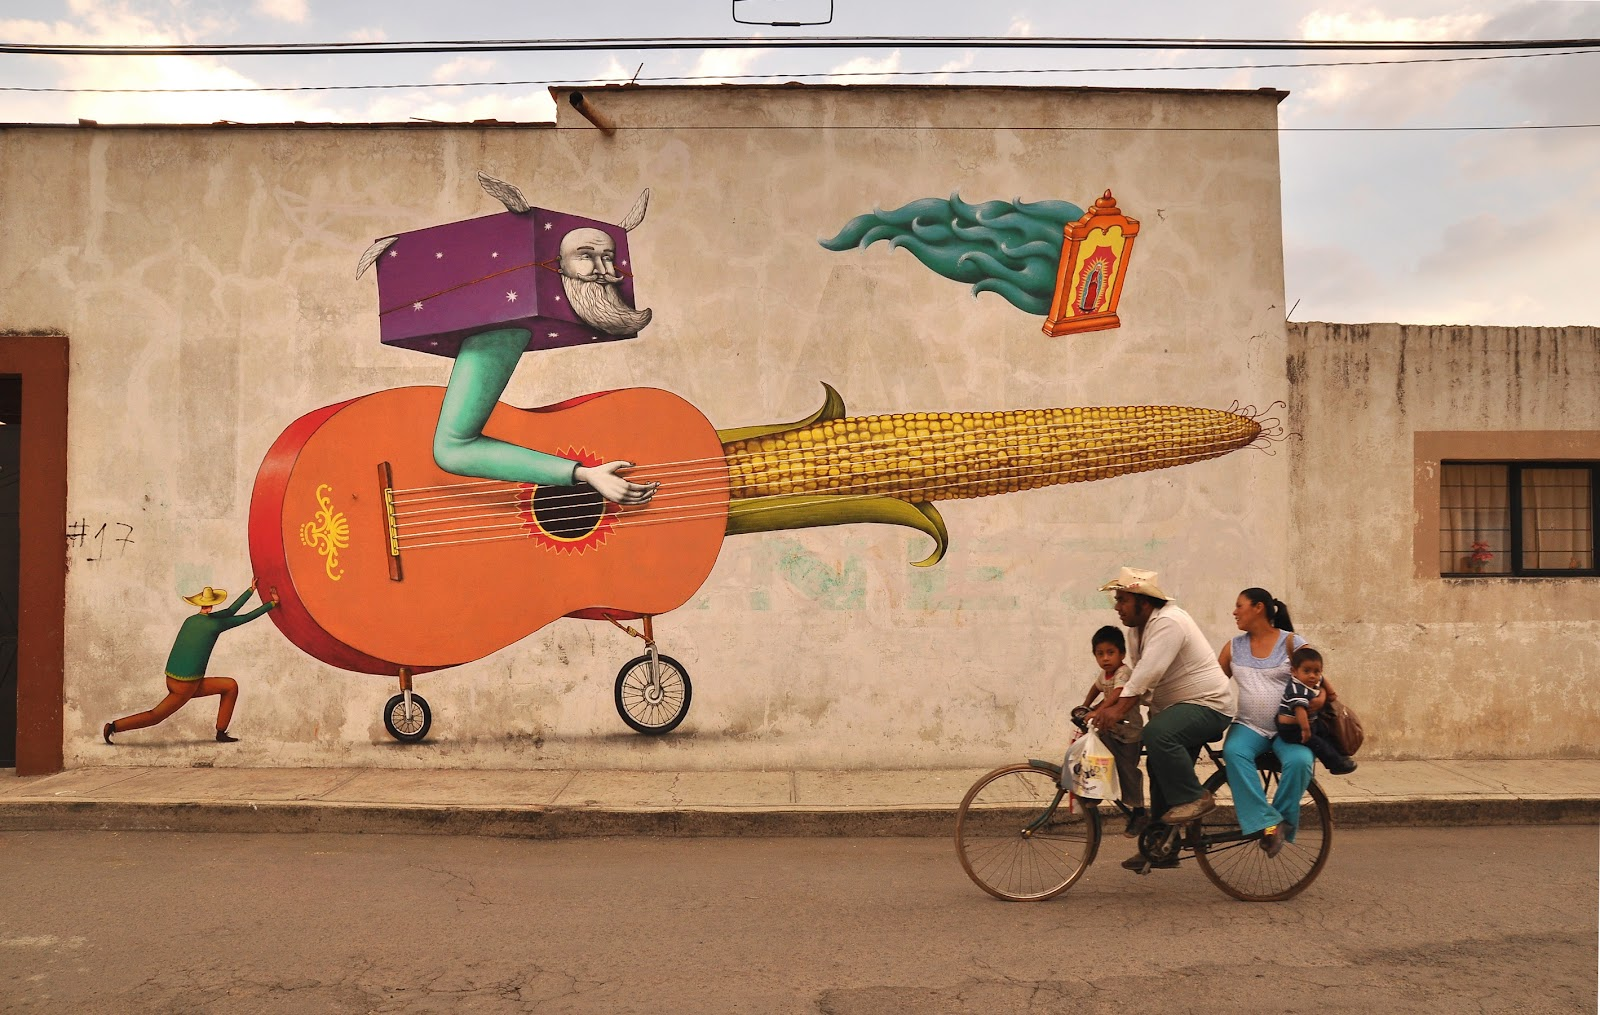 Interesni kazki new murals in cholula mexico for Arte mural en mexico